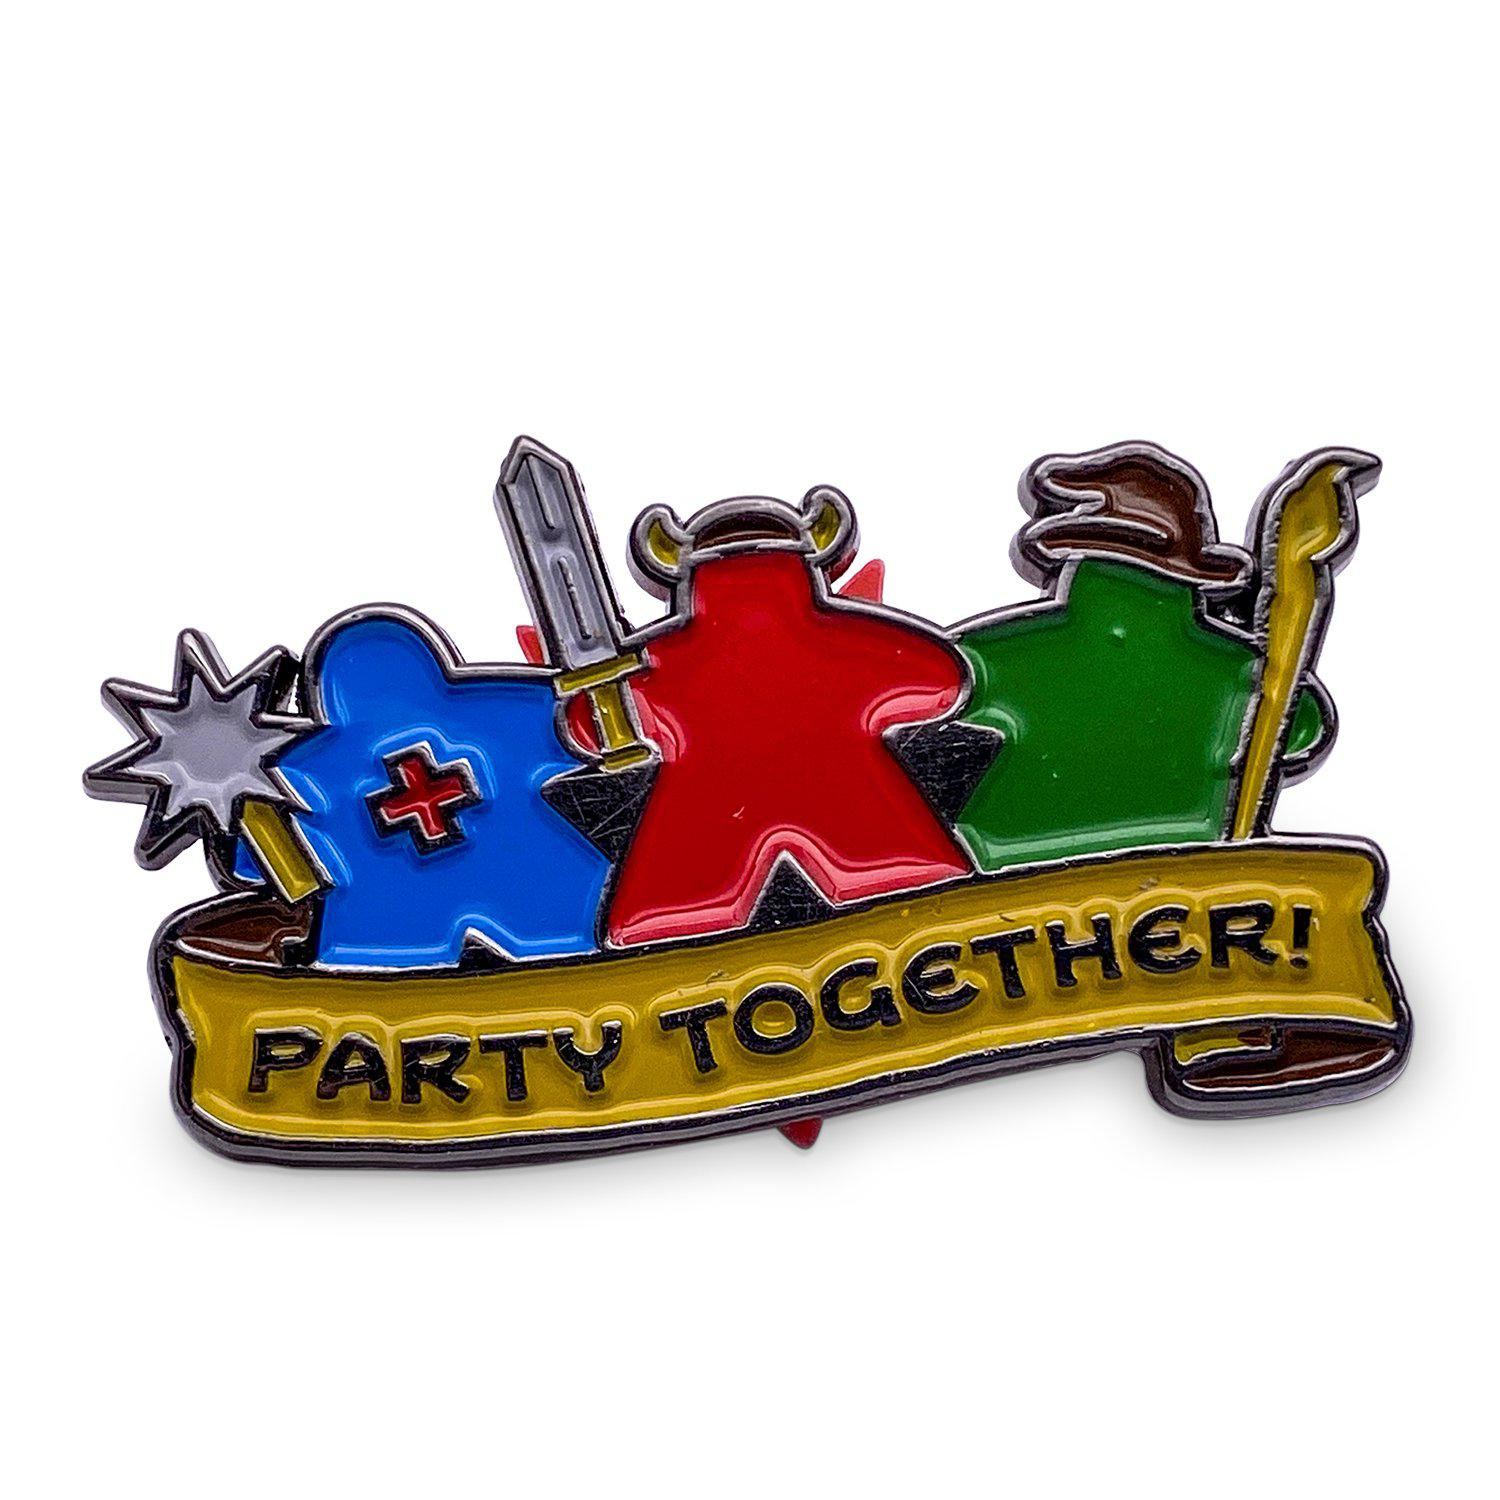 Party Together - Hard Enamel Adventure Pin Metal by Norse Foundry